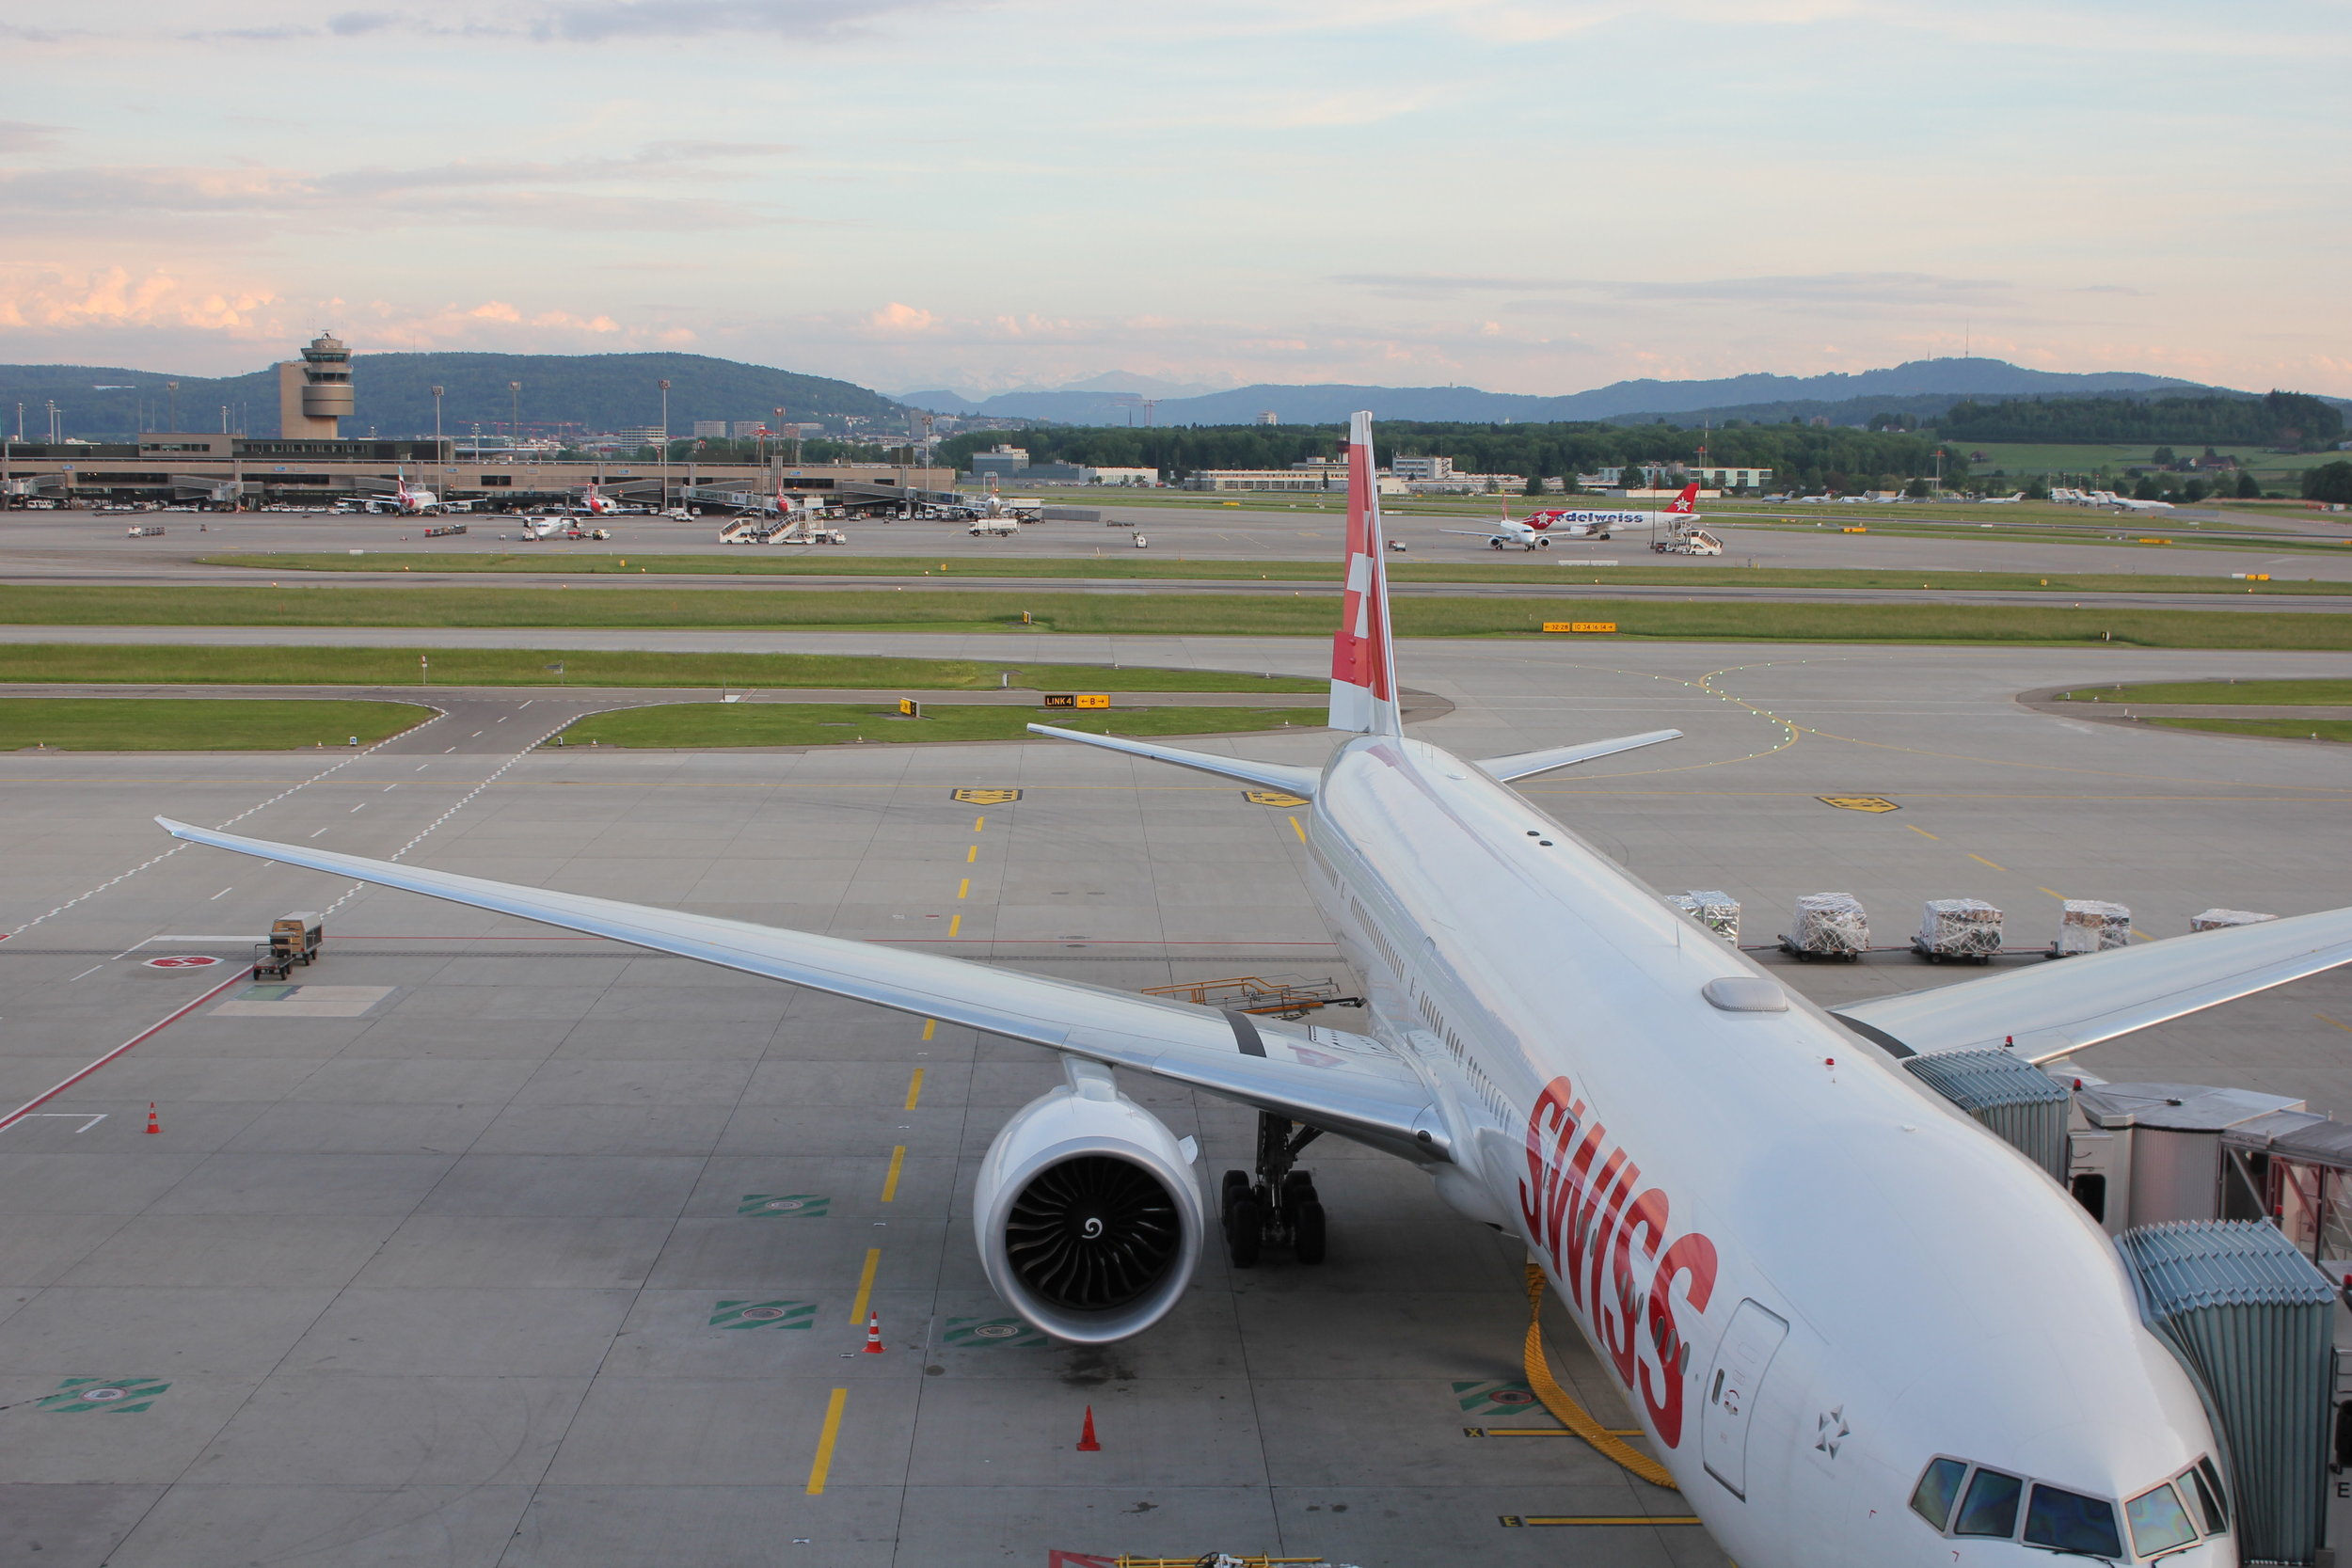 Swiss Business Lounge Zurich – View of Boeing 777